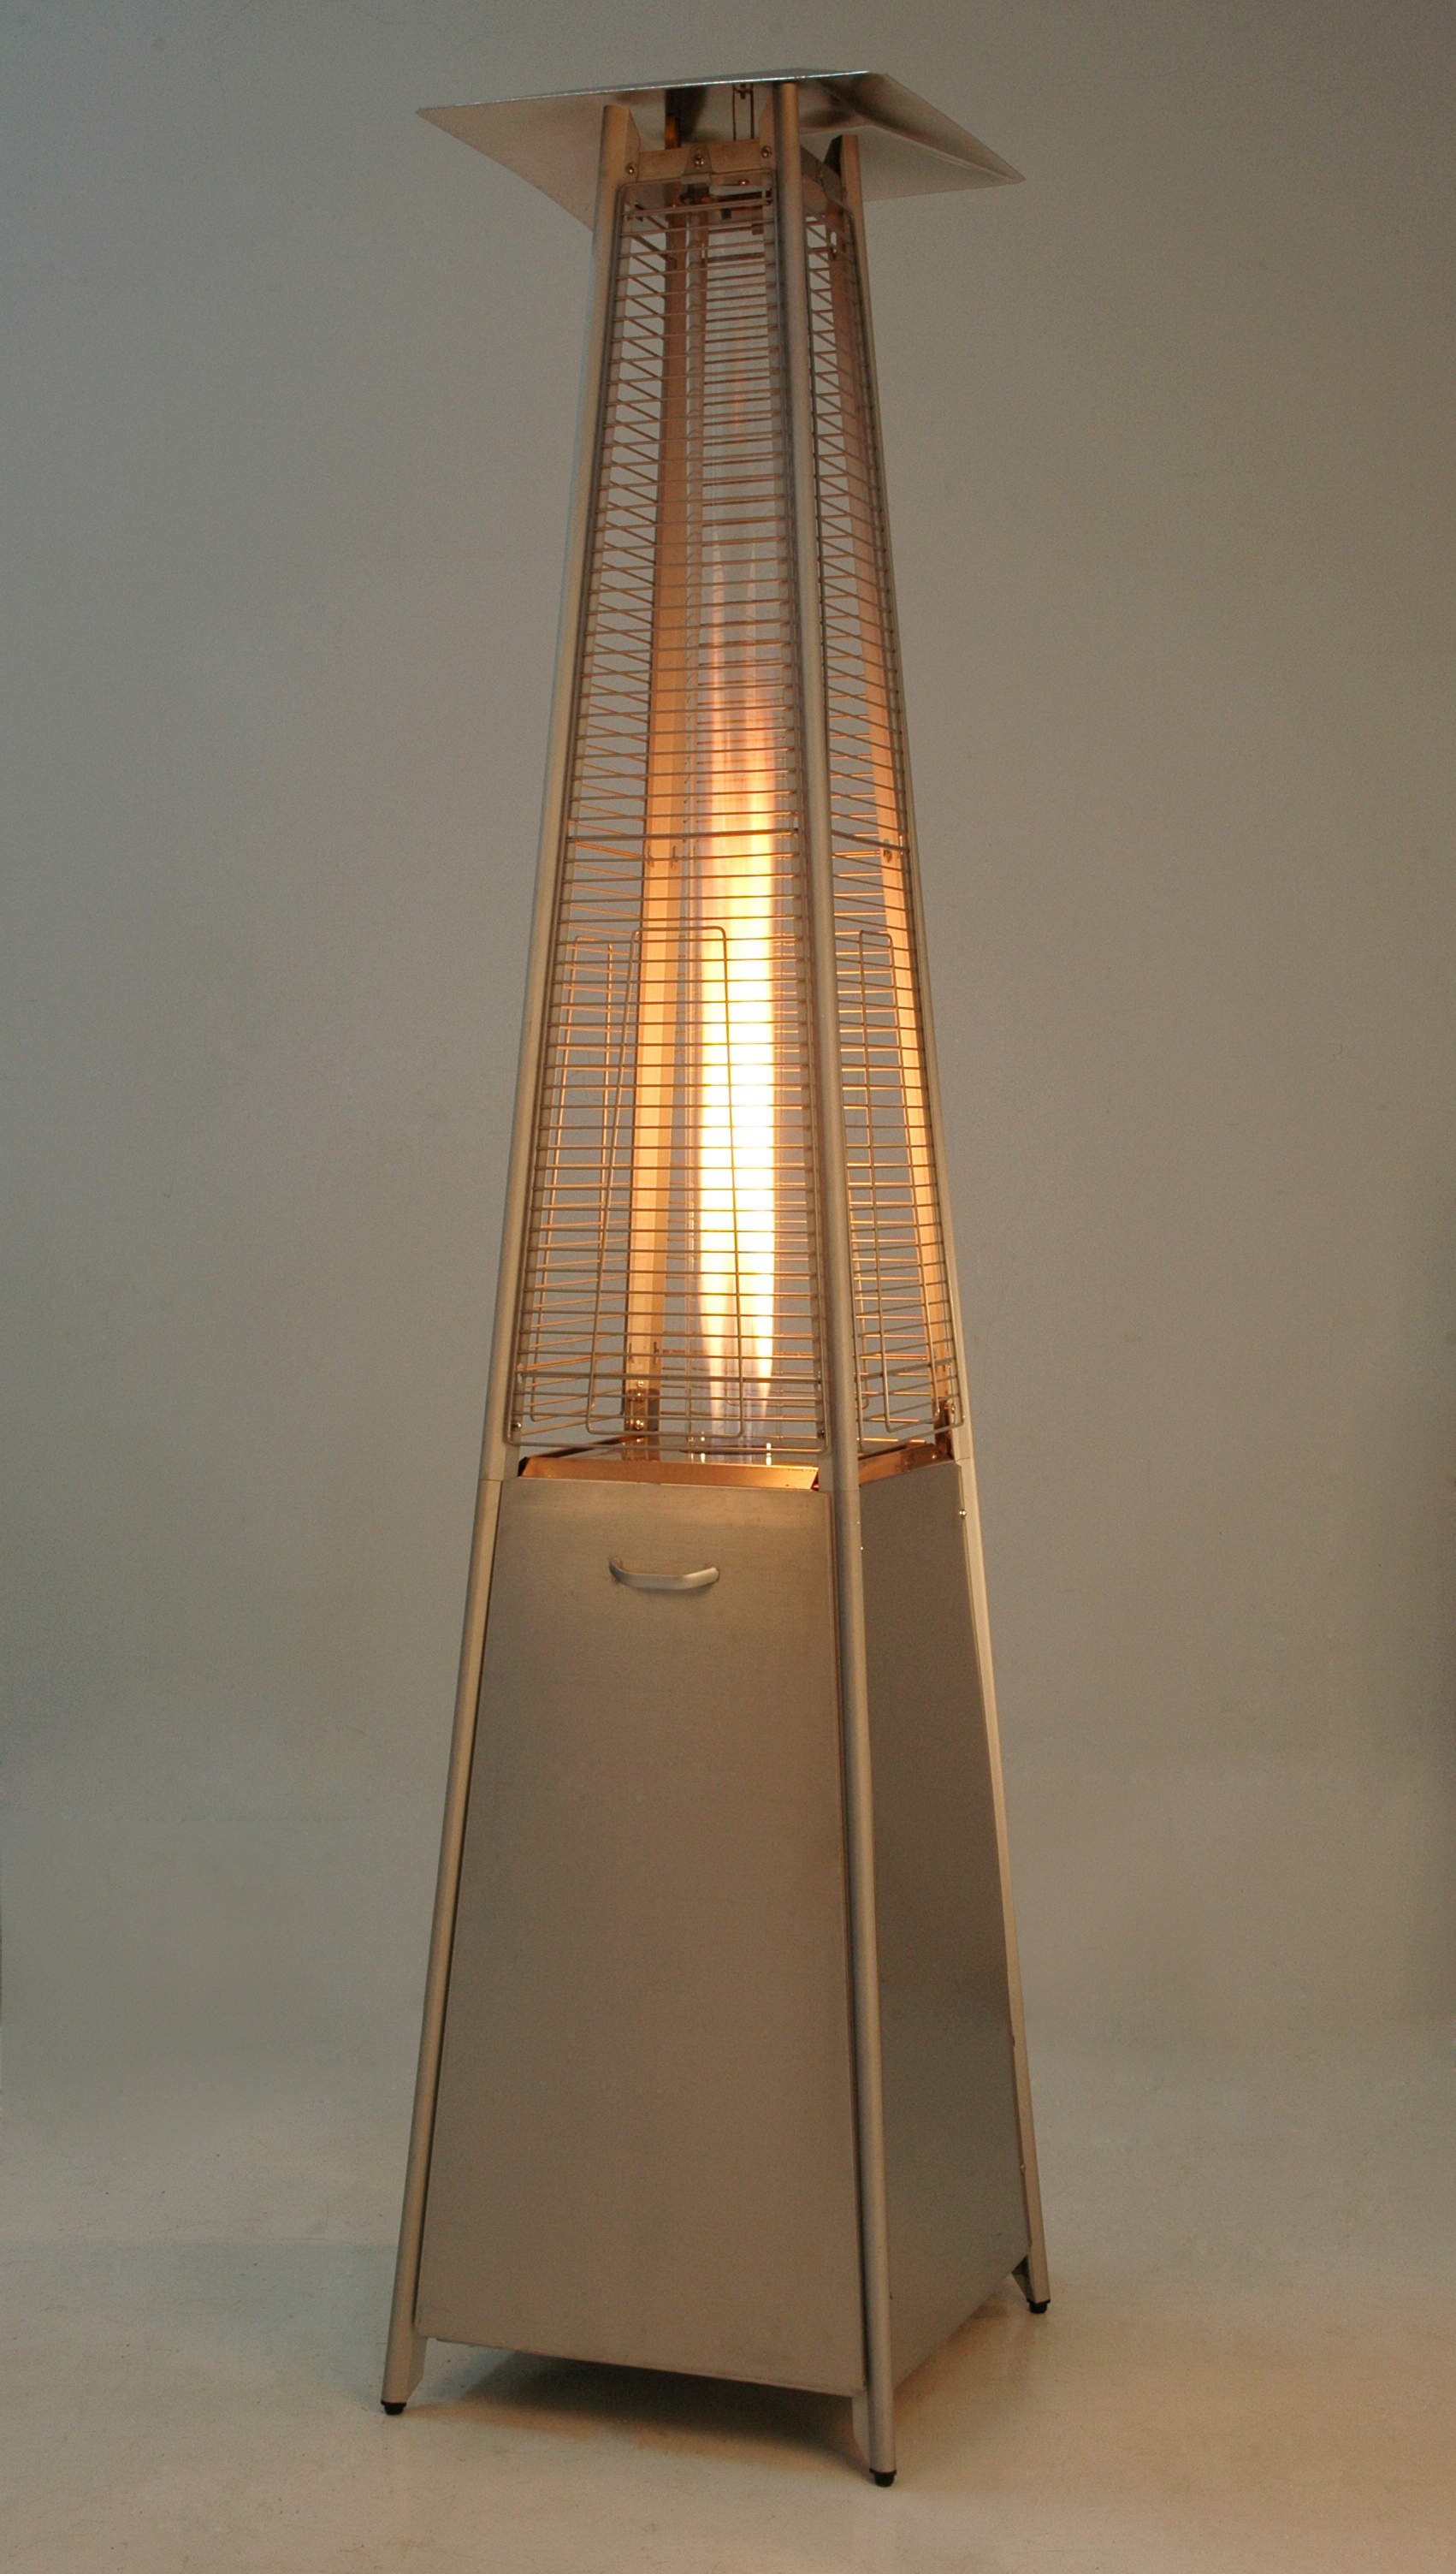 EIFFEL DECO FLAME HEATER RVS LOOK